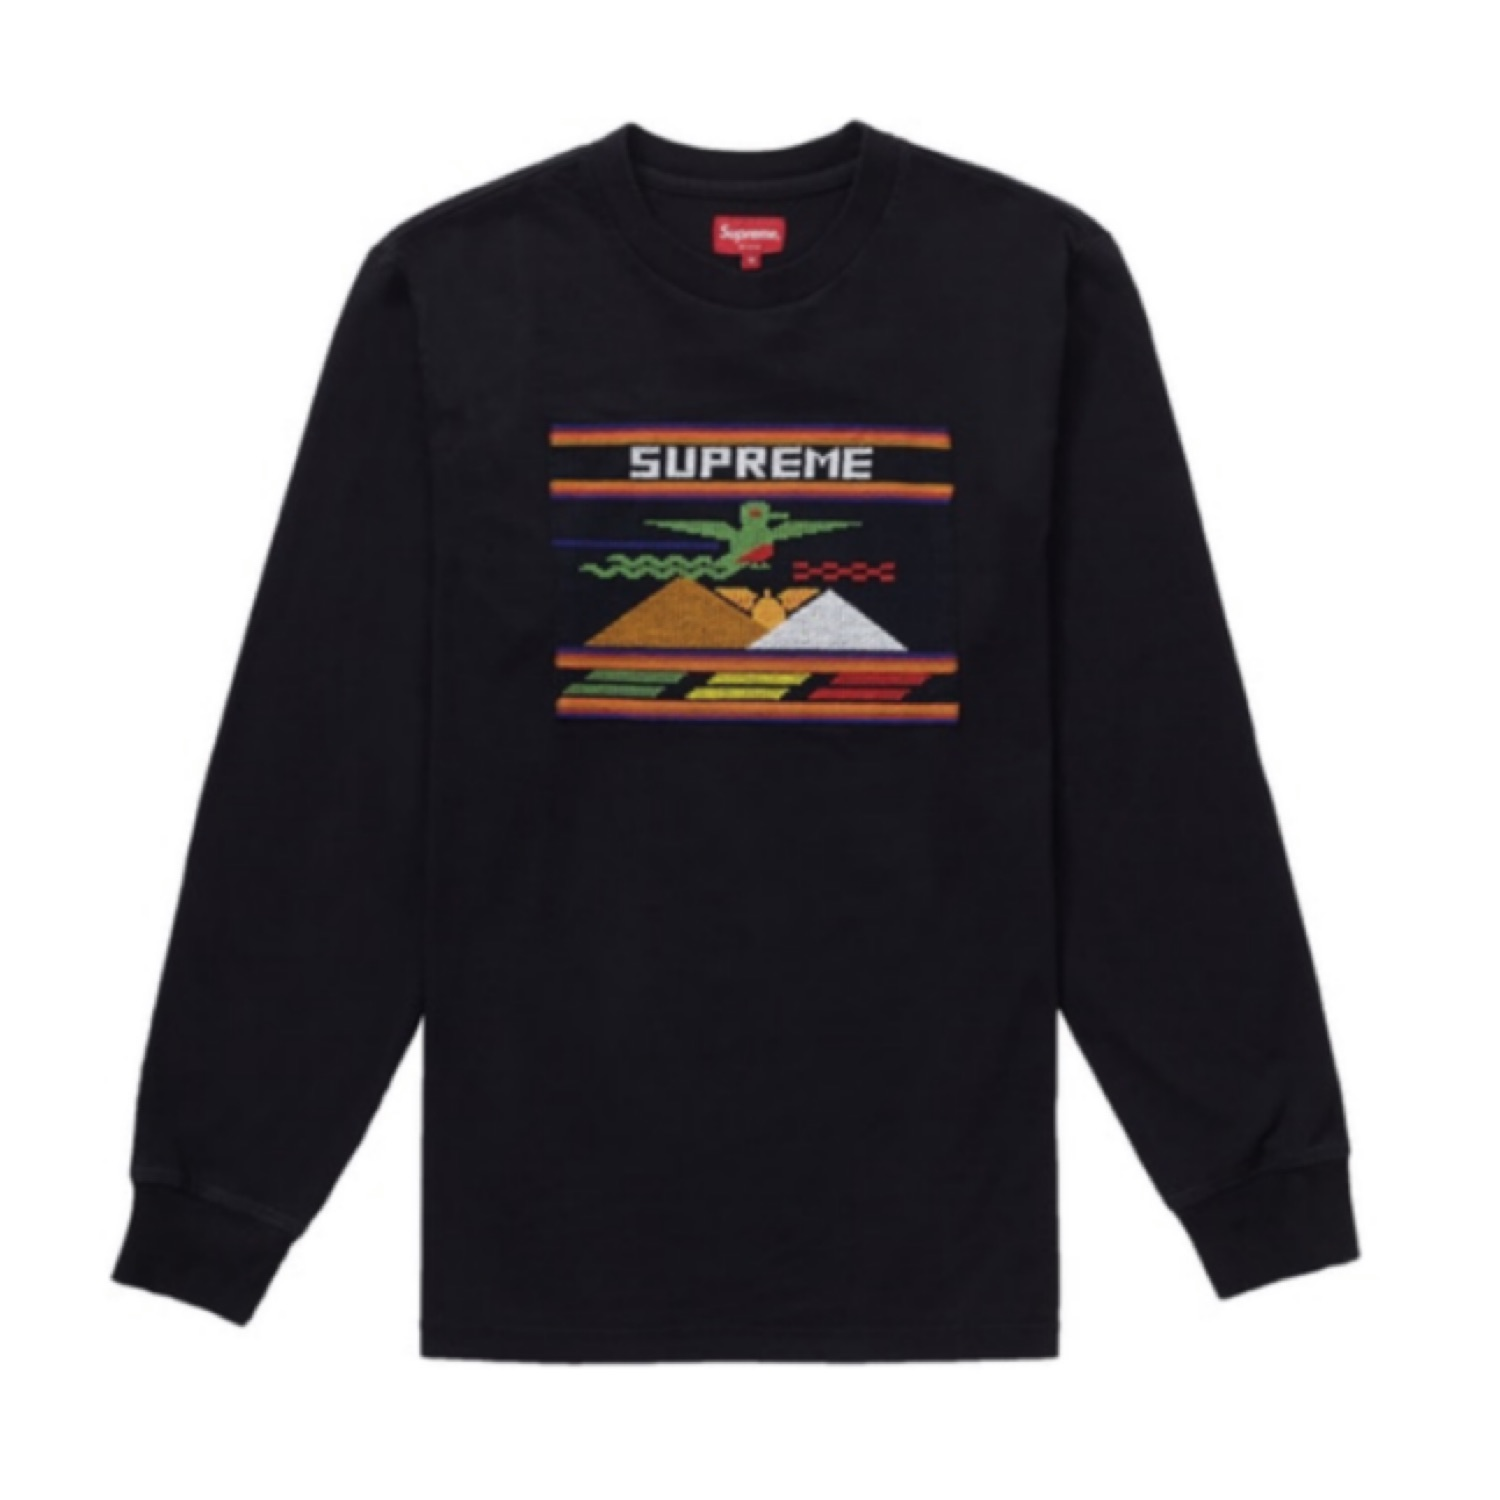 Supreme Needlepoint Patch L/S Shirt Black